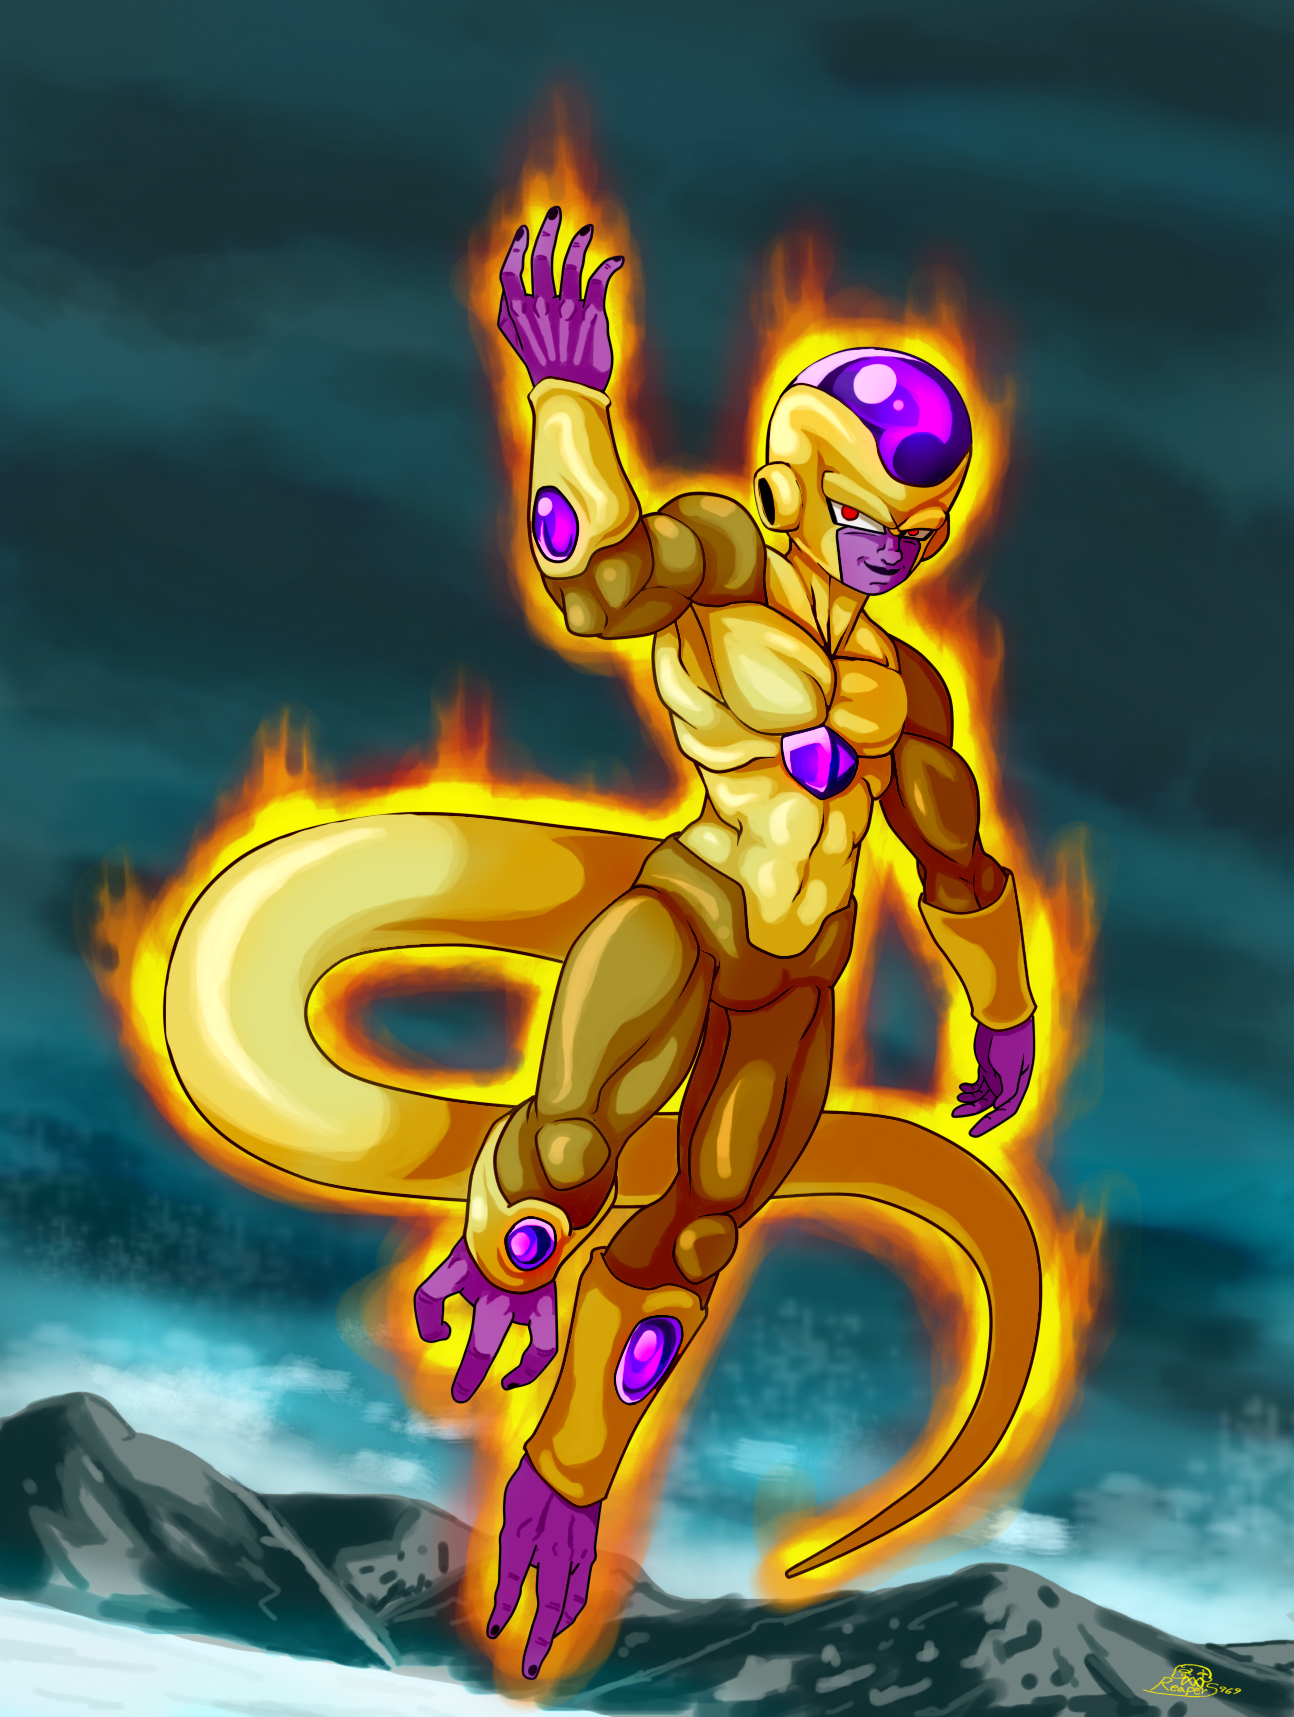 Golden frieza wallpaper wallpapersafari for Deviantart wallpaper